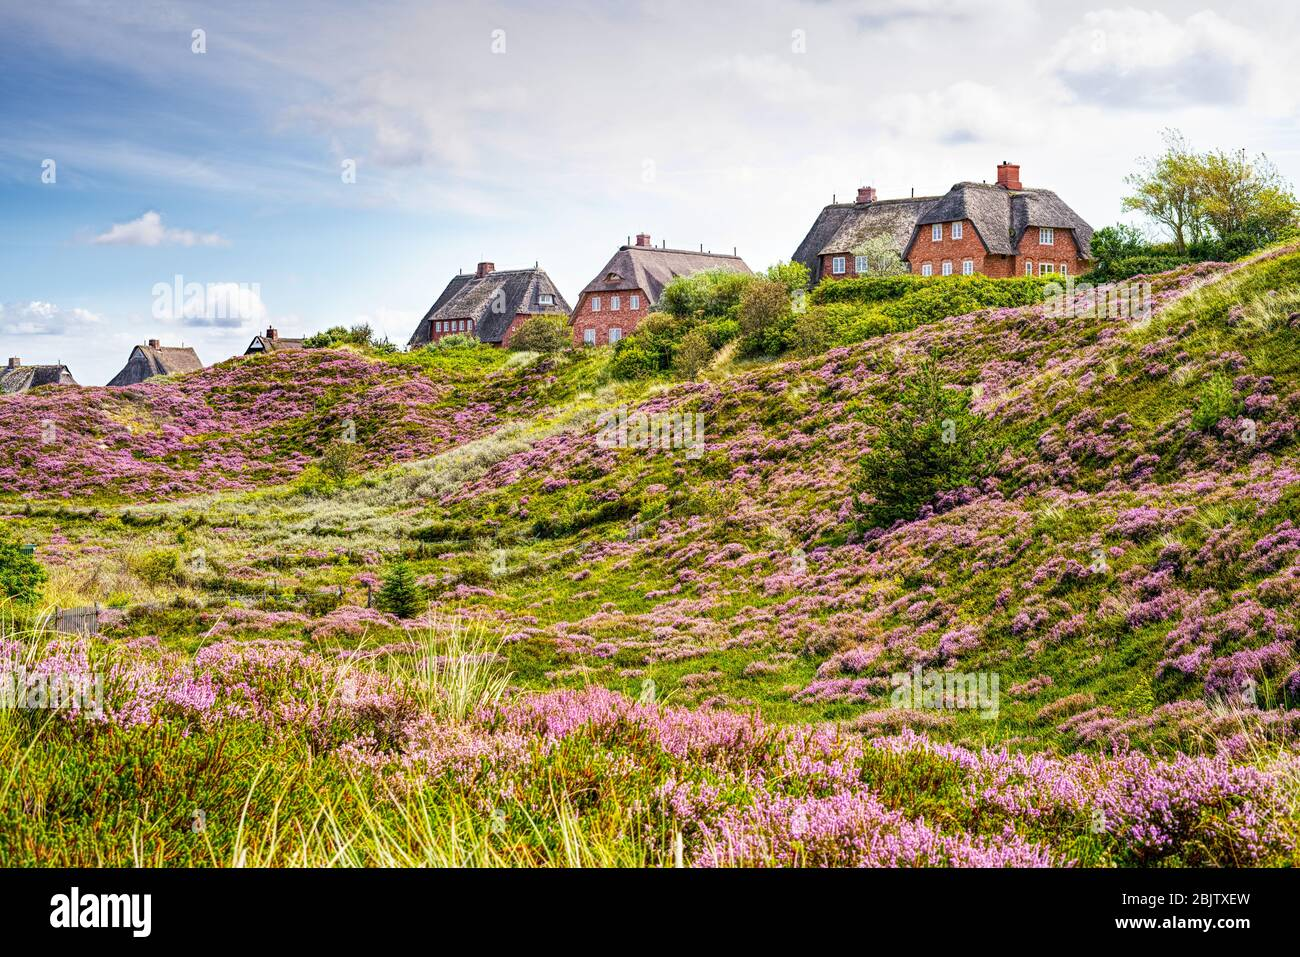 Heather in bloom and thatched cottages in the dunes. Fairytale landscape panorama on the island of Sylt, North Frisian Islands, Germany. Stock Photo